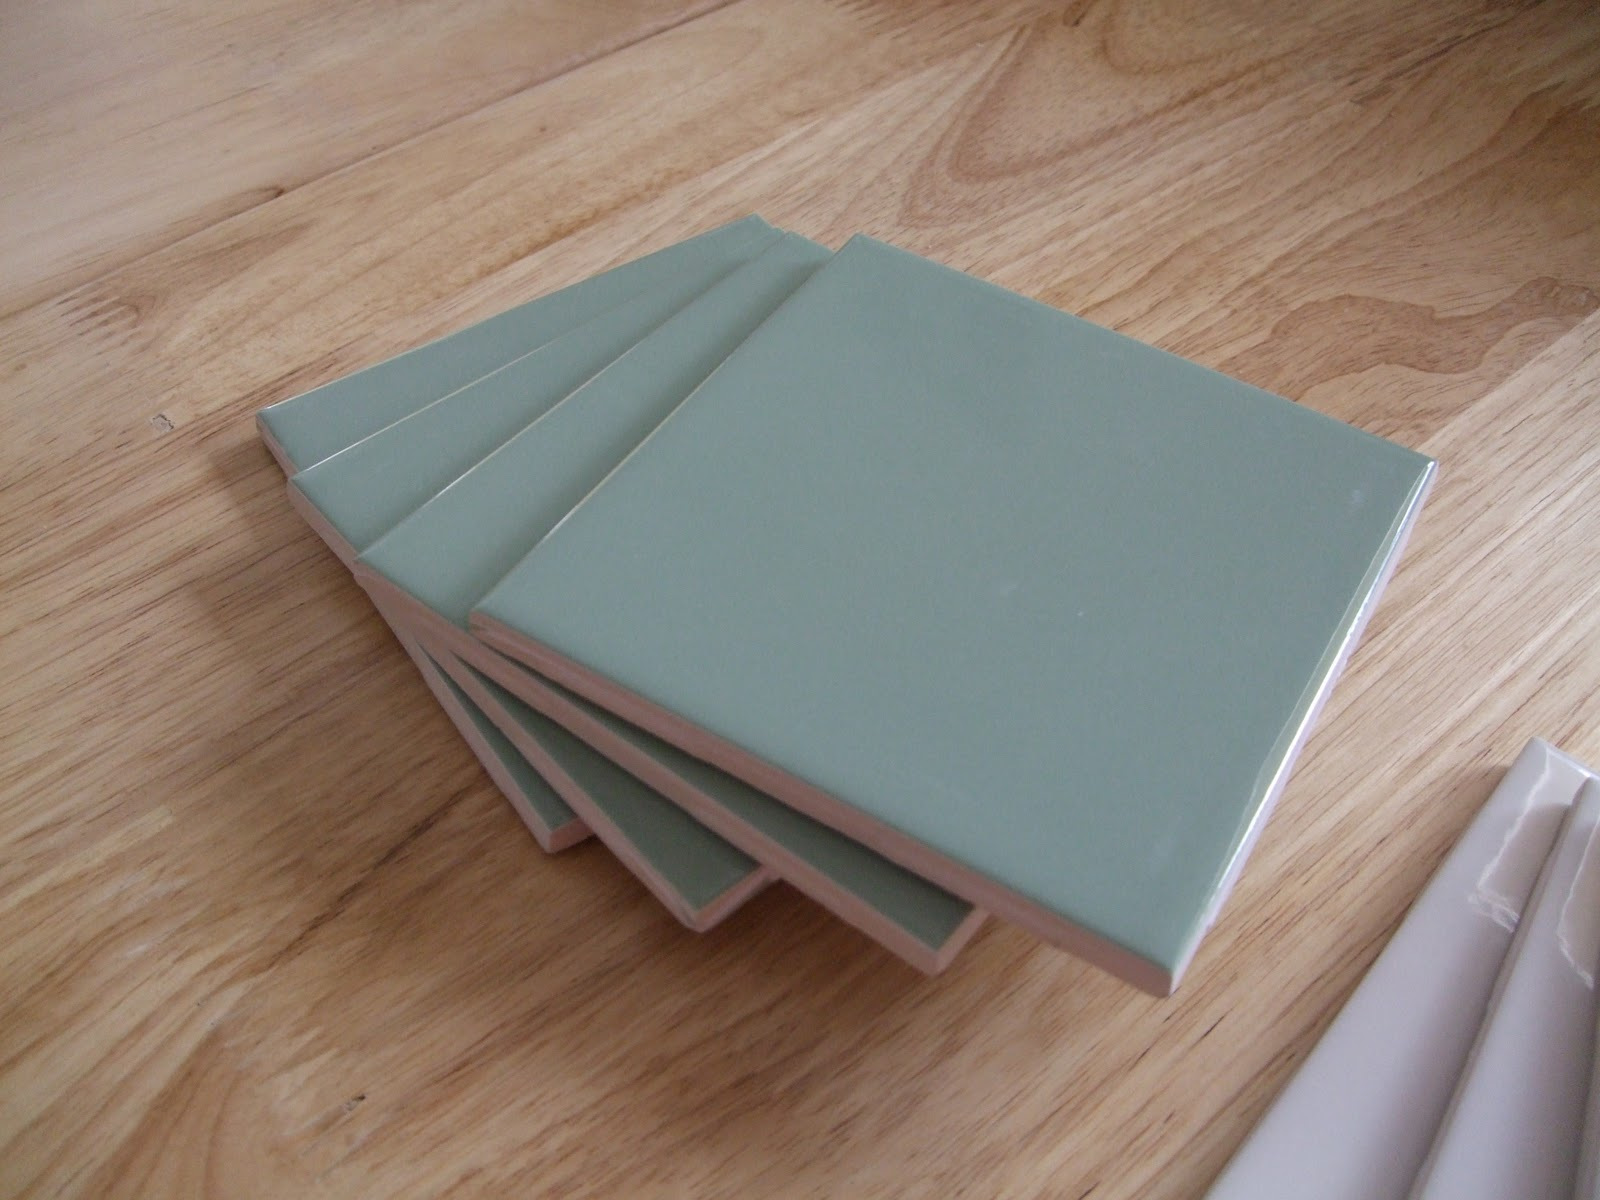 Diy Table Coasters Why Buy When You Can Diy Ceramic Tile Coasters